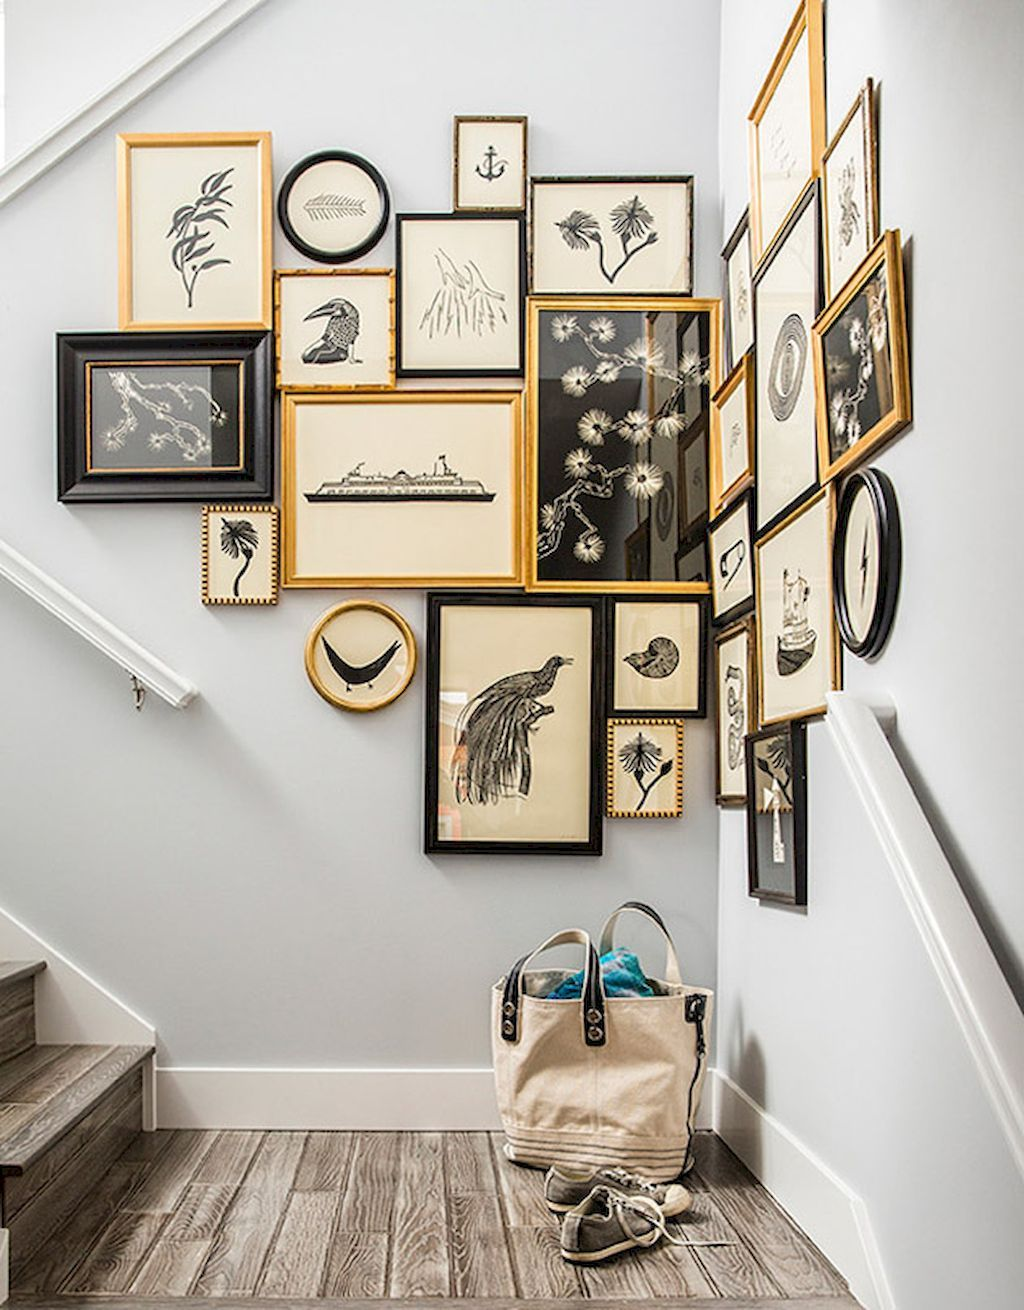 Cool 40 Amazing Small Apartment Artwork Decor Ideas S Homeastern